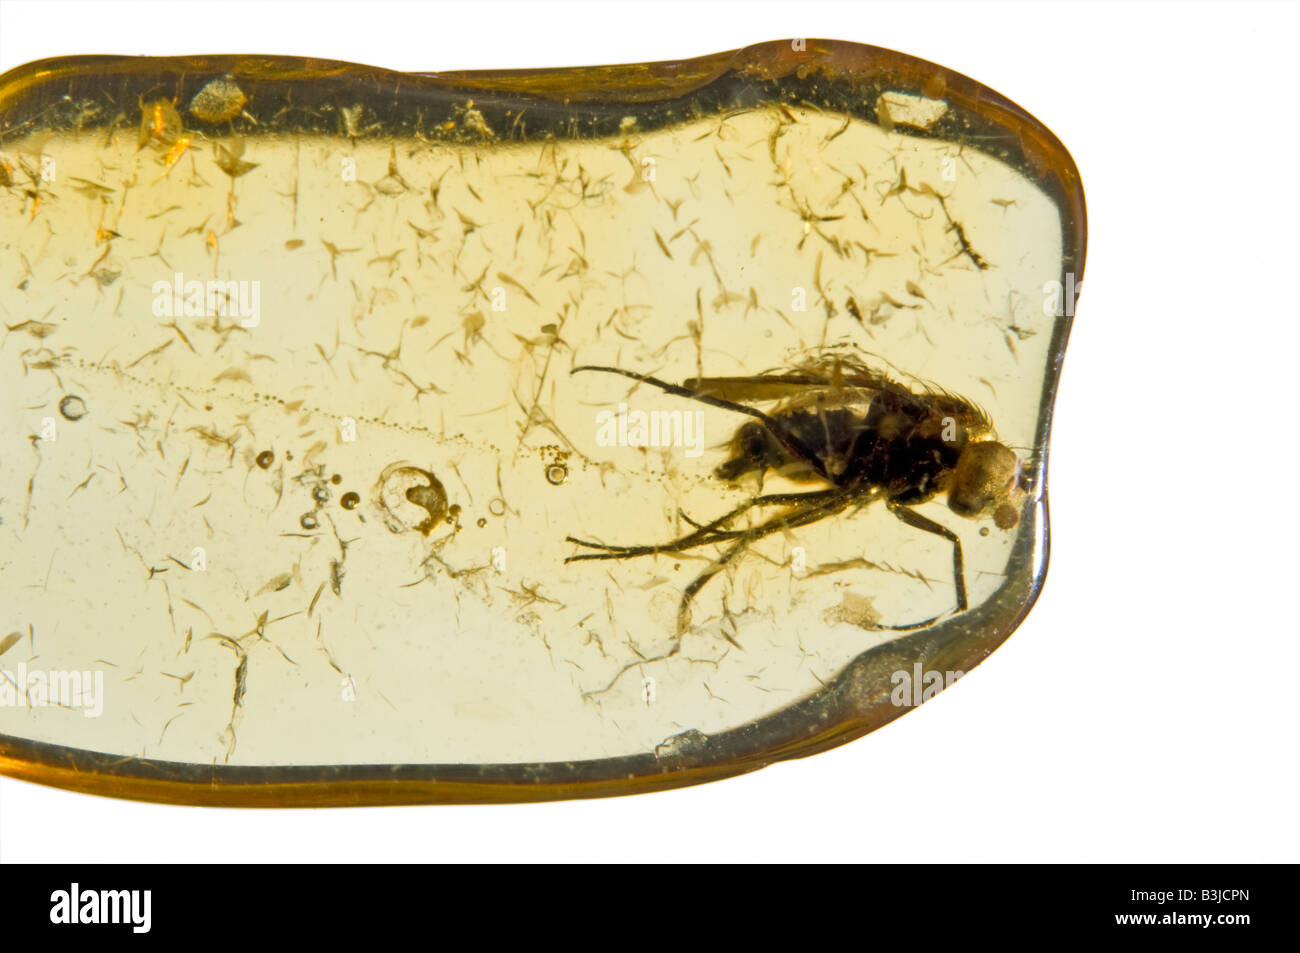 Prehistoric fly preserved in Lithuanian Baltic Amber - Stock Image